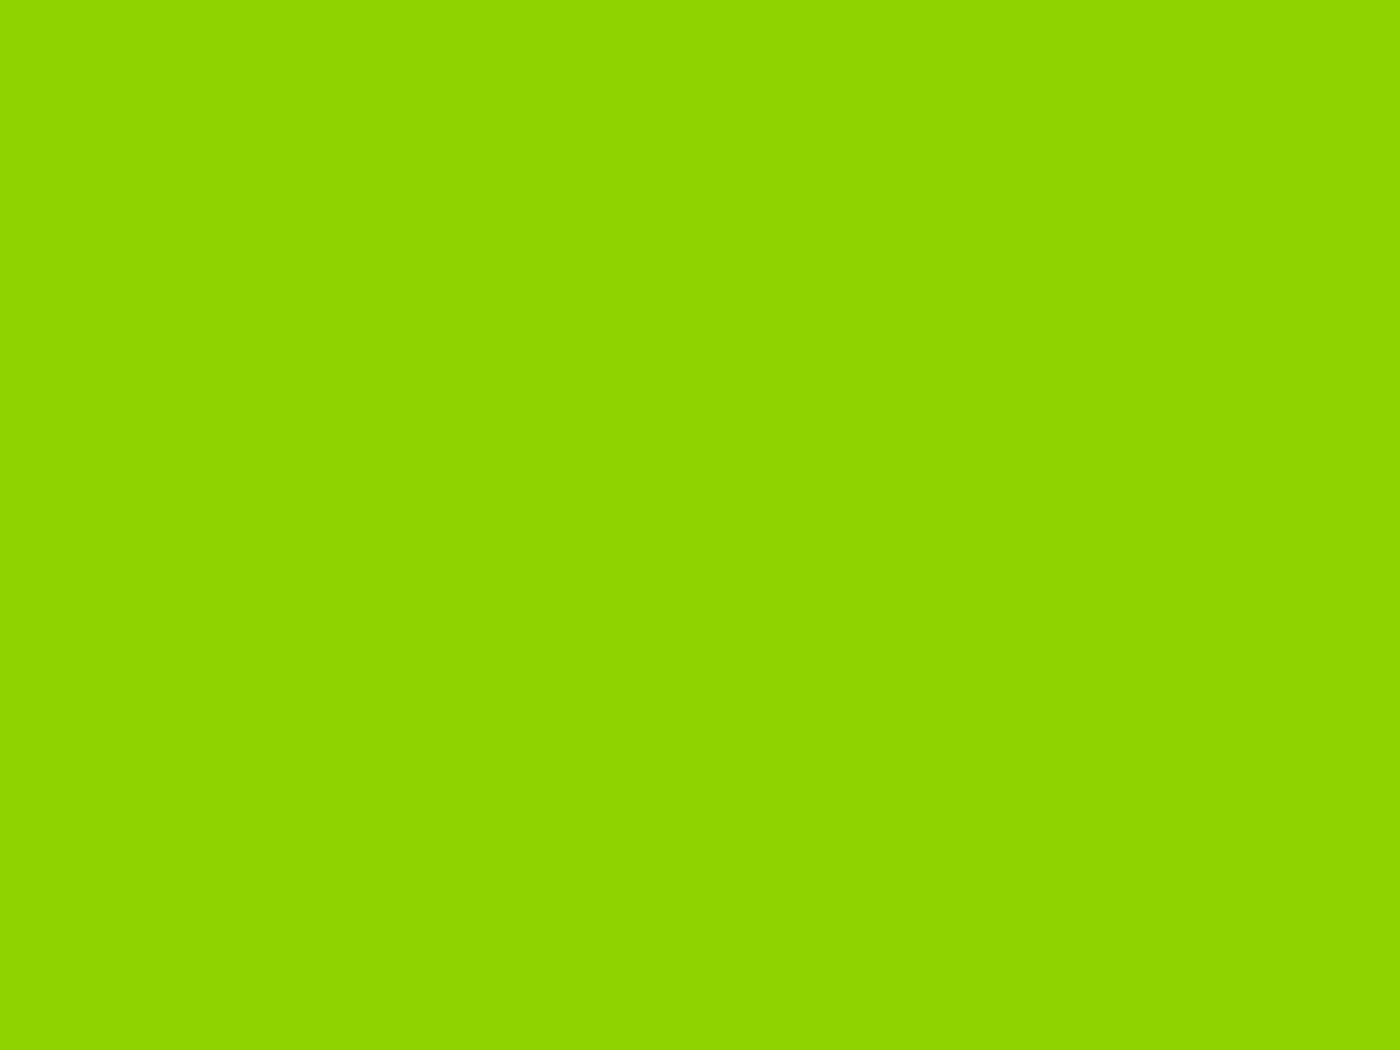 1400x1050 Sheen Green Solid Color Background